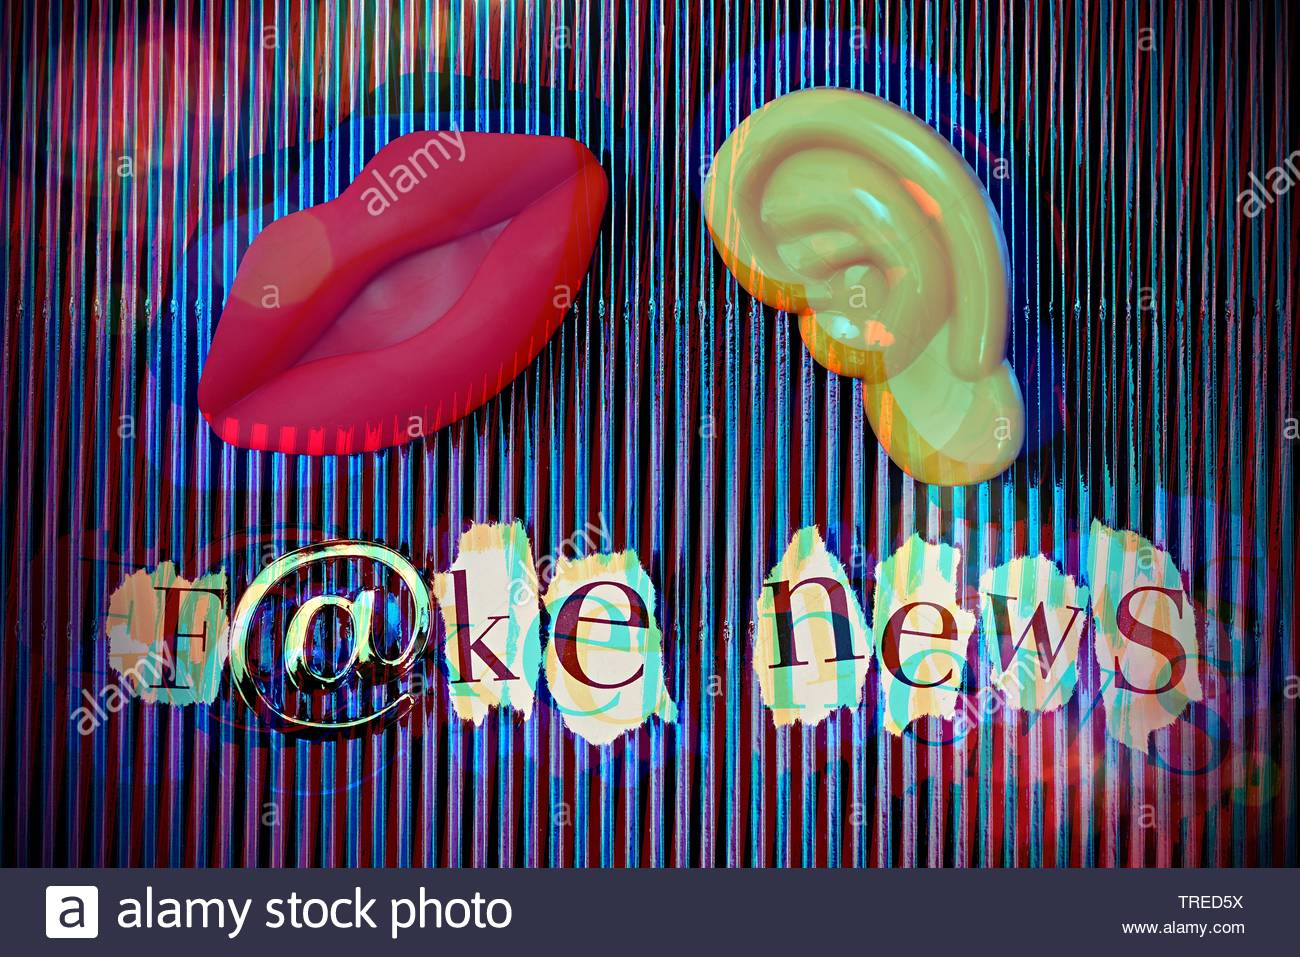 Aufschrift F@KE NEWS (Falschnachrichten) und ein symbolischer Mund und ein Ohr vor blauem Hintergrund | Lettering F@KE NEWS and a symbolized ear and m - Stock Image